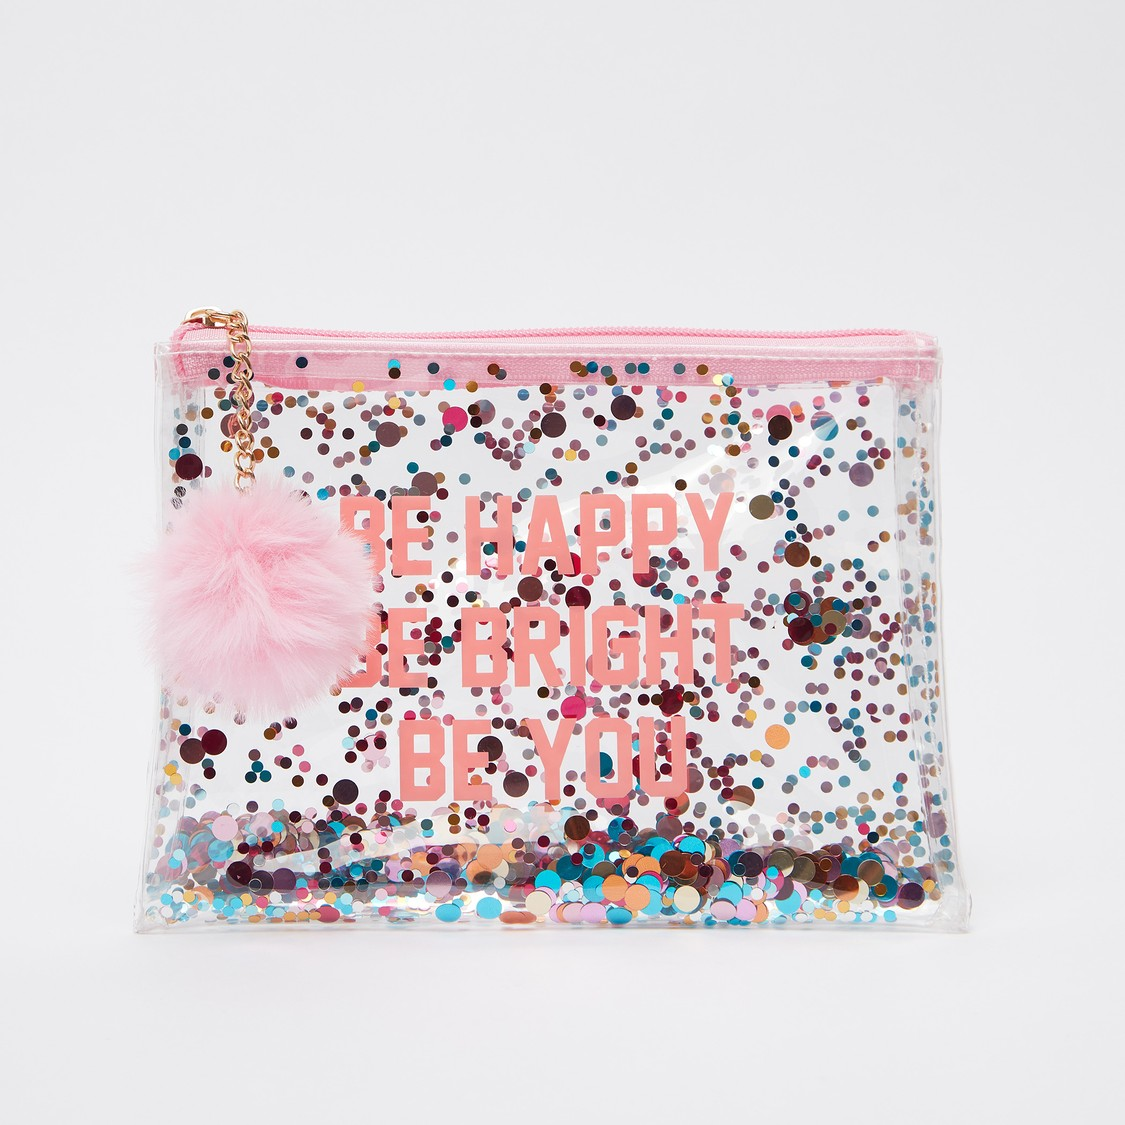 Typographic Print Pouch with Zip Closure